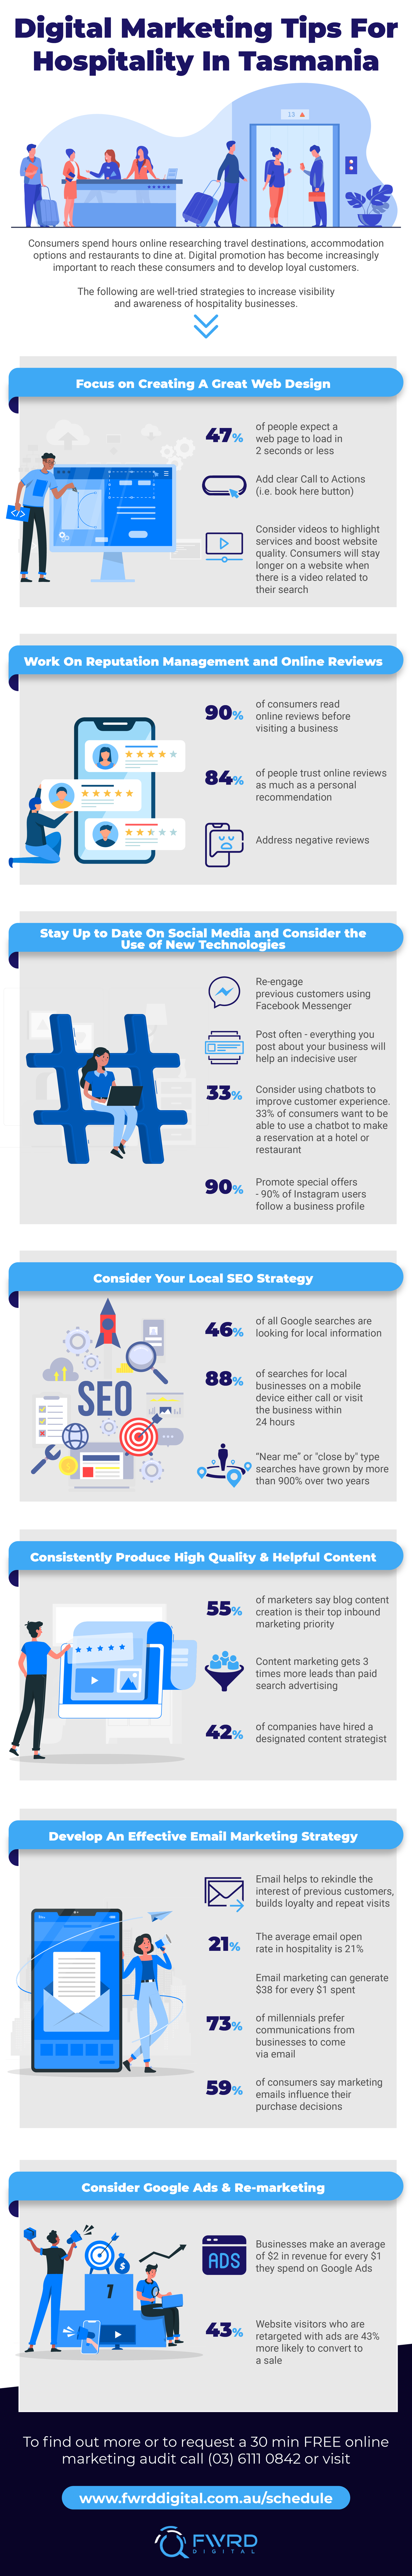 Infographic - Digital Marketing For Hospitality